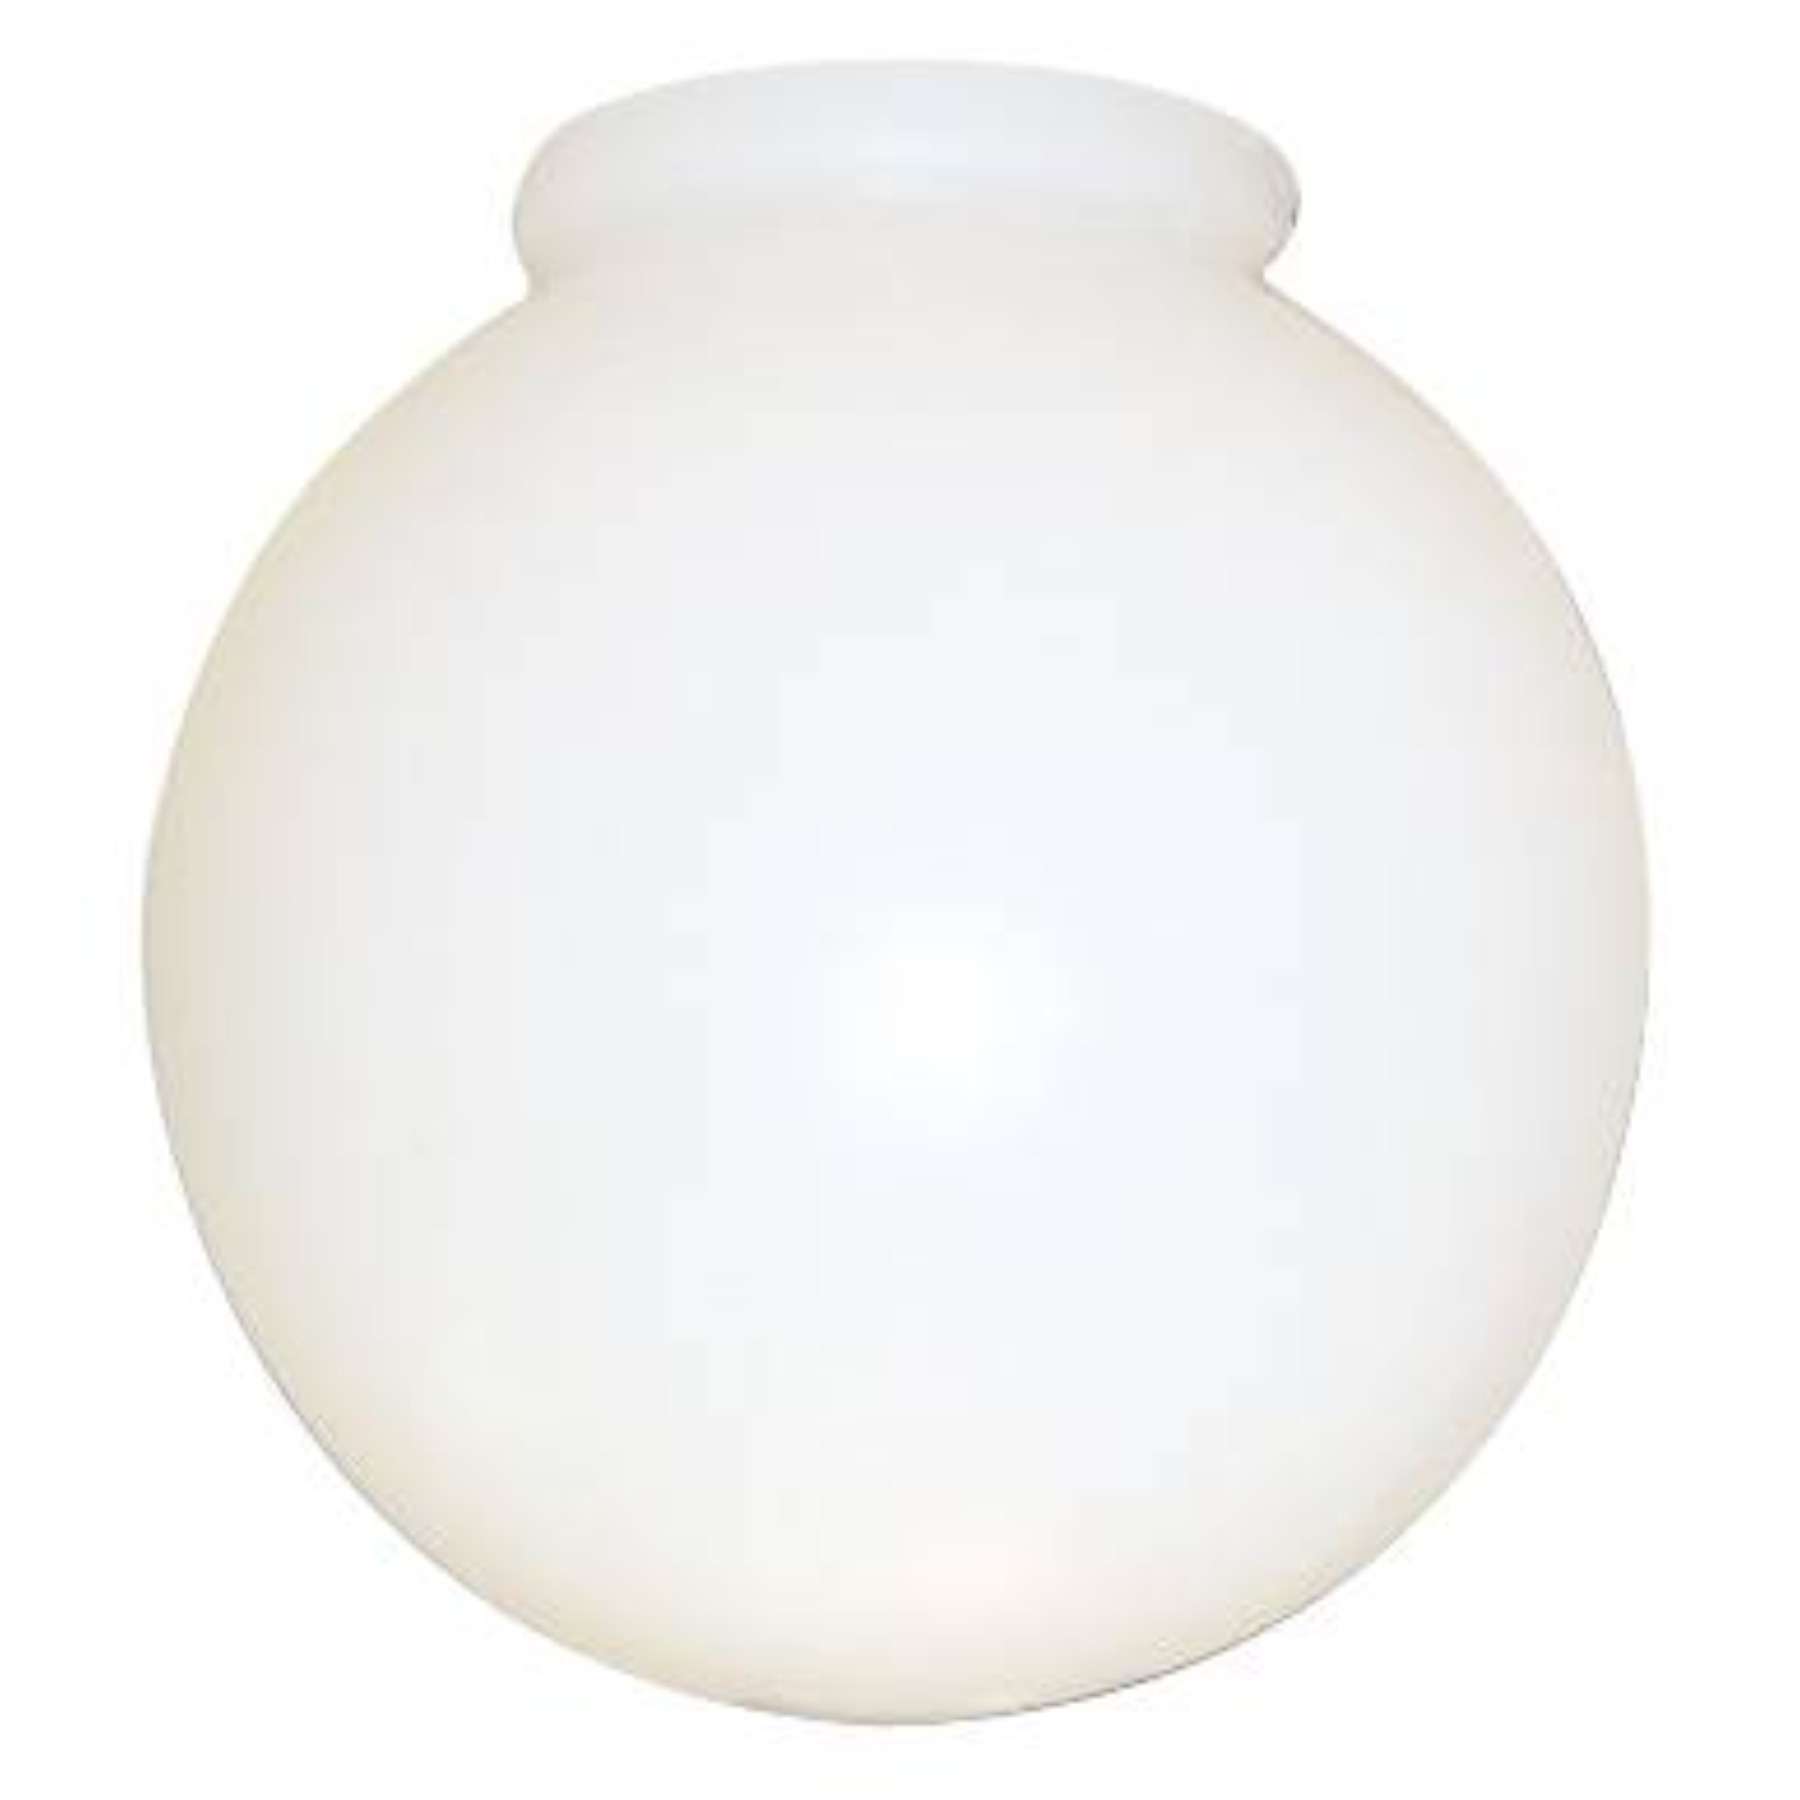 ACRYLIC GLOBE 6 IN. WHITE